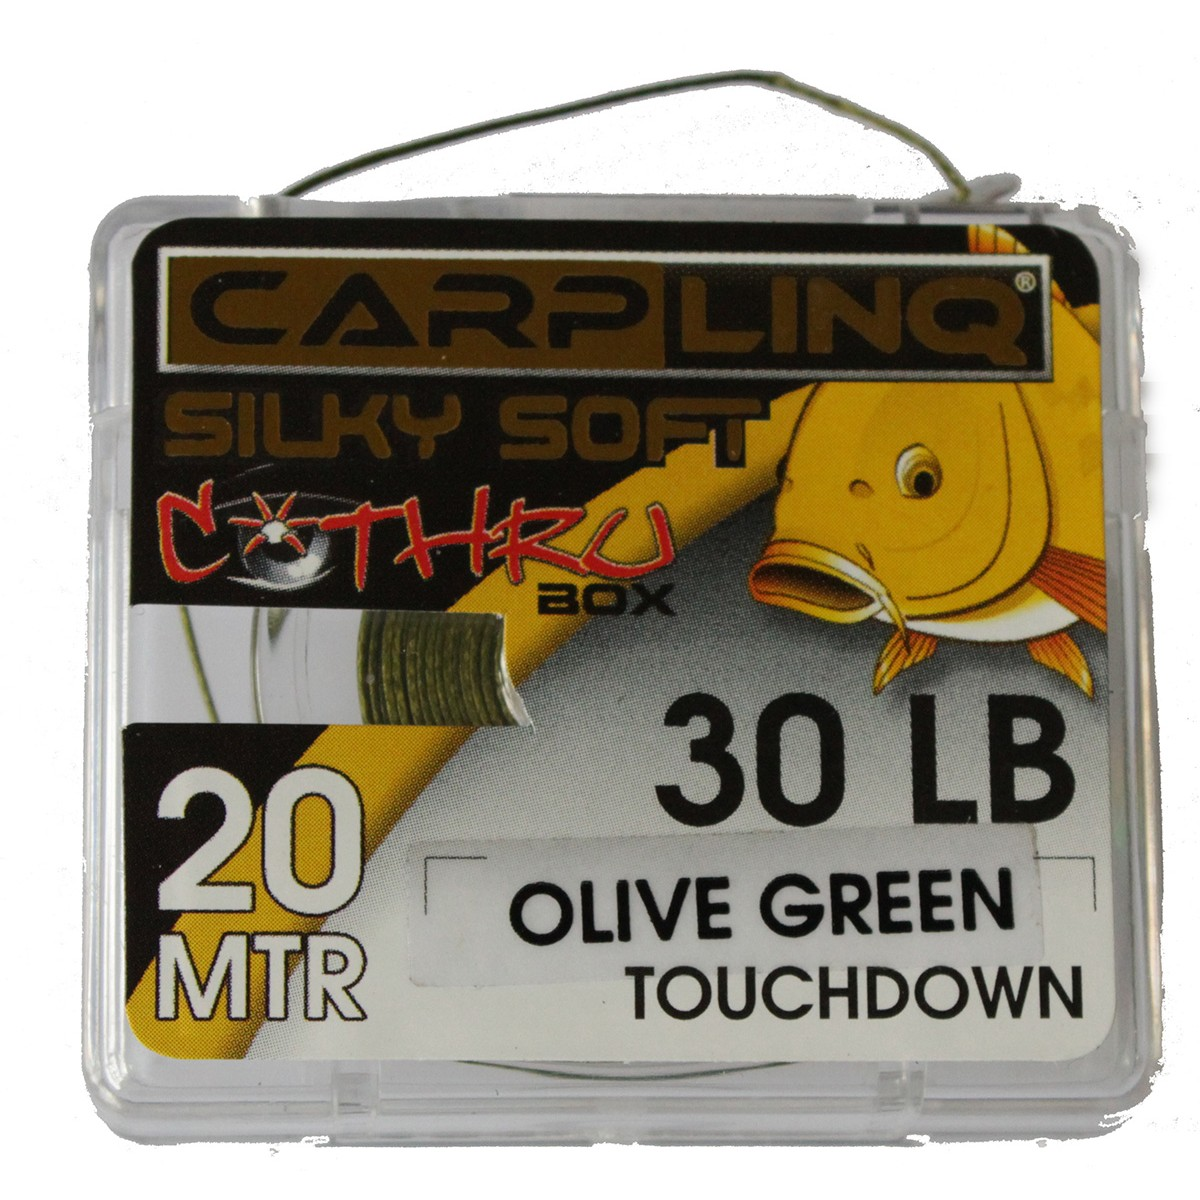 Carp Linq Silky Soft Olive Green Touchdown